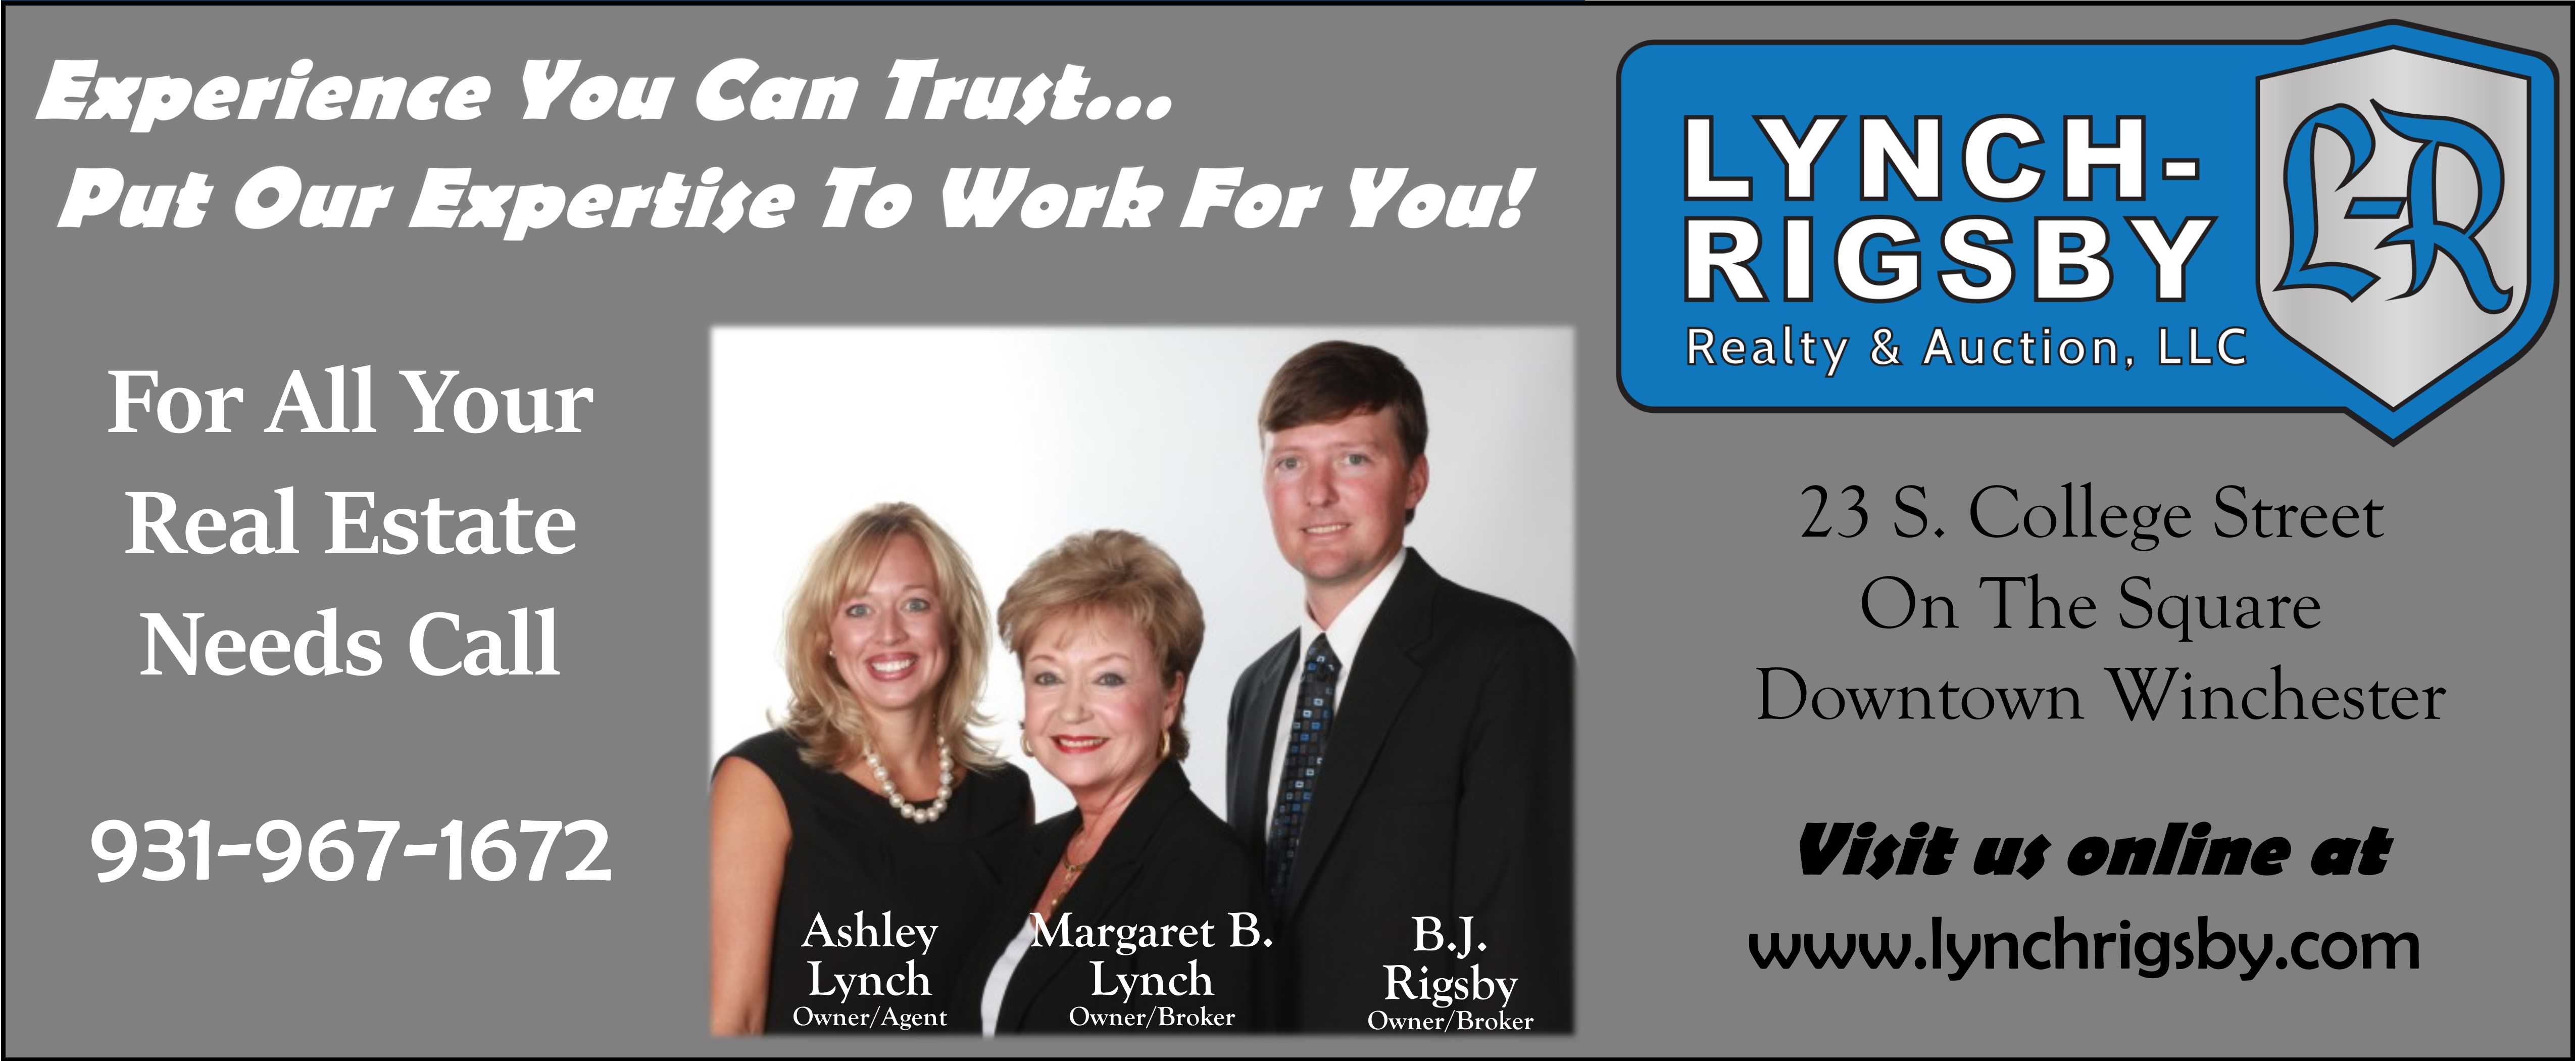 Lynch-Rigsby Realty & Auction, LLC